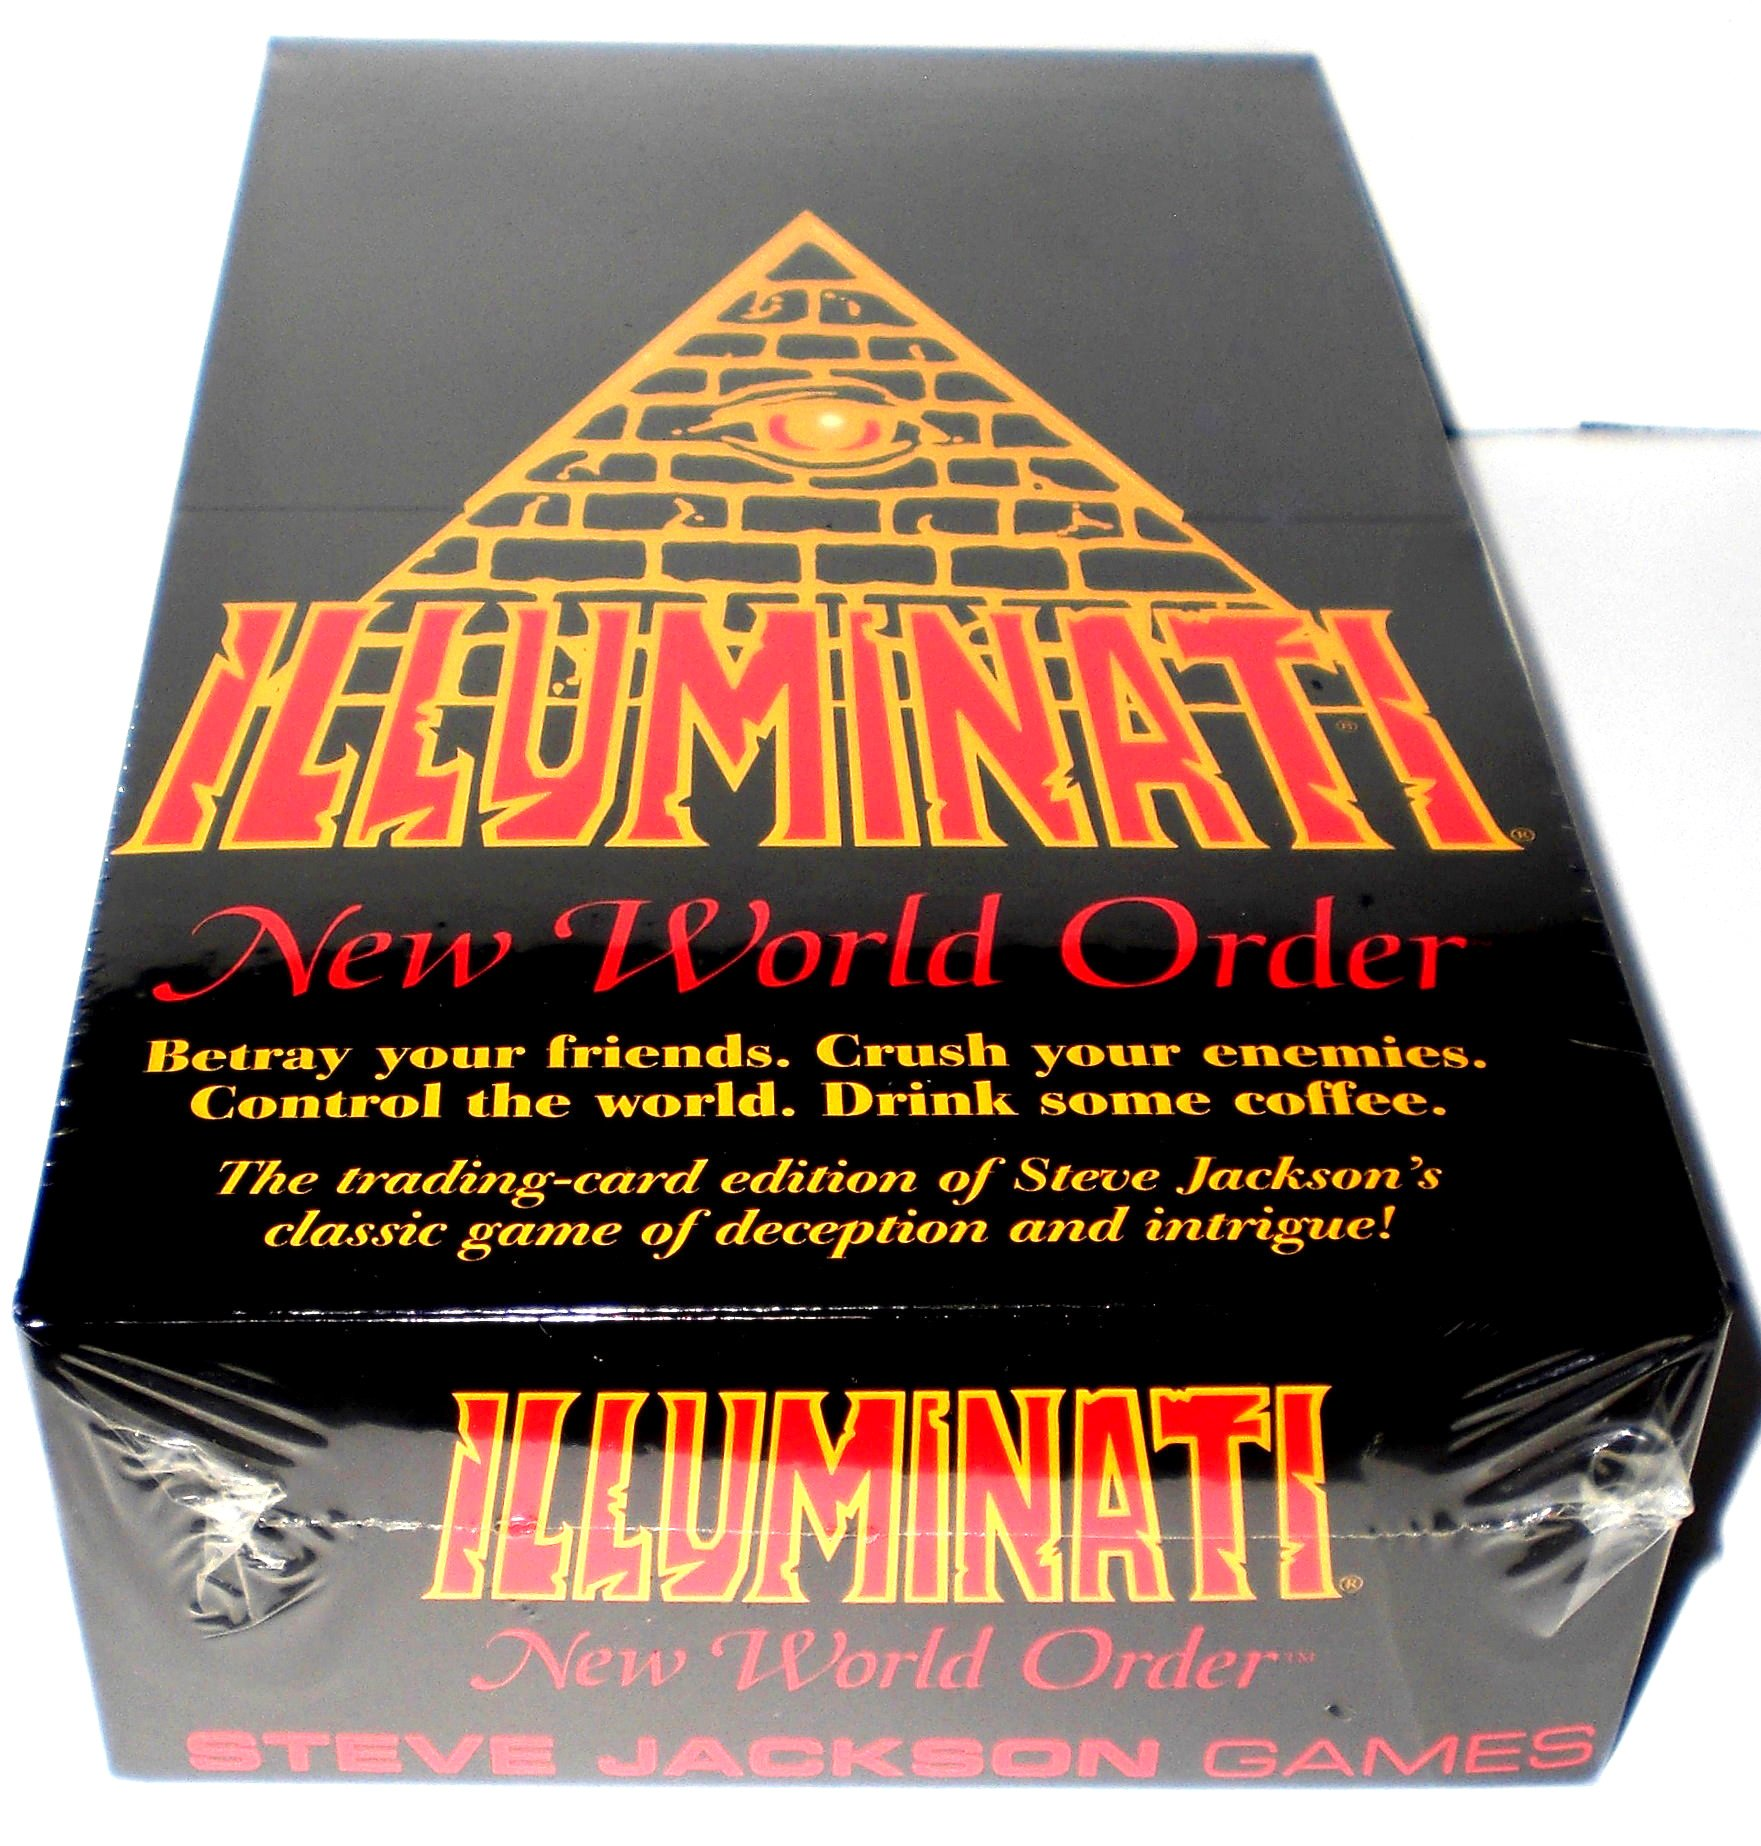 1994-1995 ILLUMINATI NEW WORLD ORDER Card Game Factory SEALED CCG (INWO: Limited Ed Booster Pack POP)(540 cards total)By Steve Jackson(Limited Edition ORIGINAL VERSION 1.1 MARCH 1994-1995)